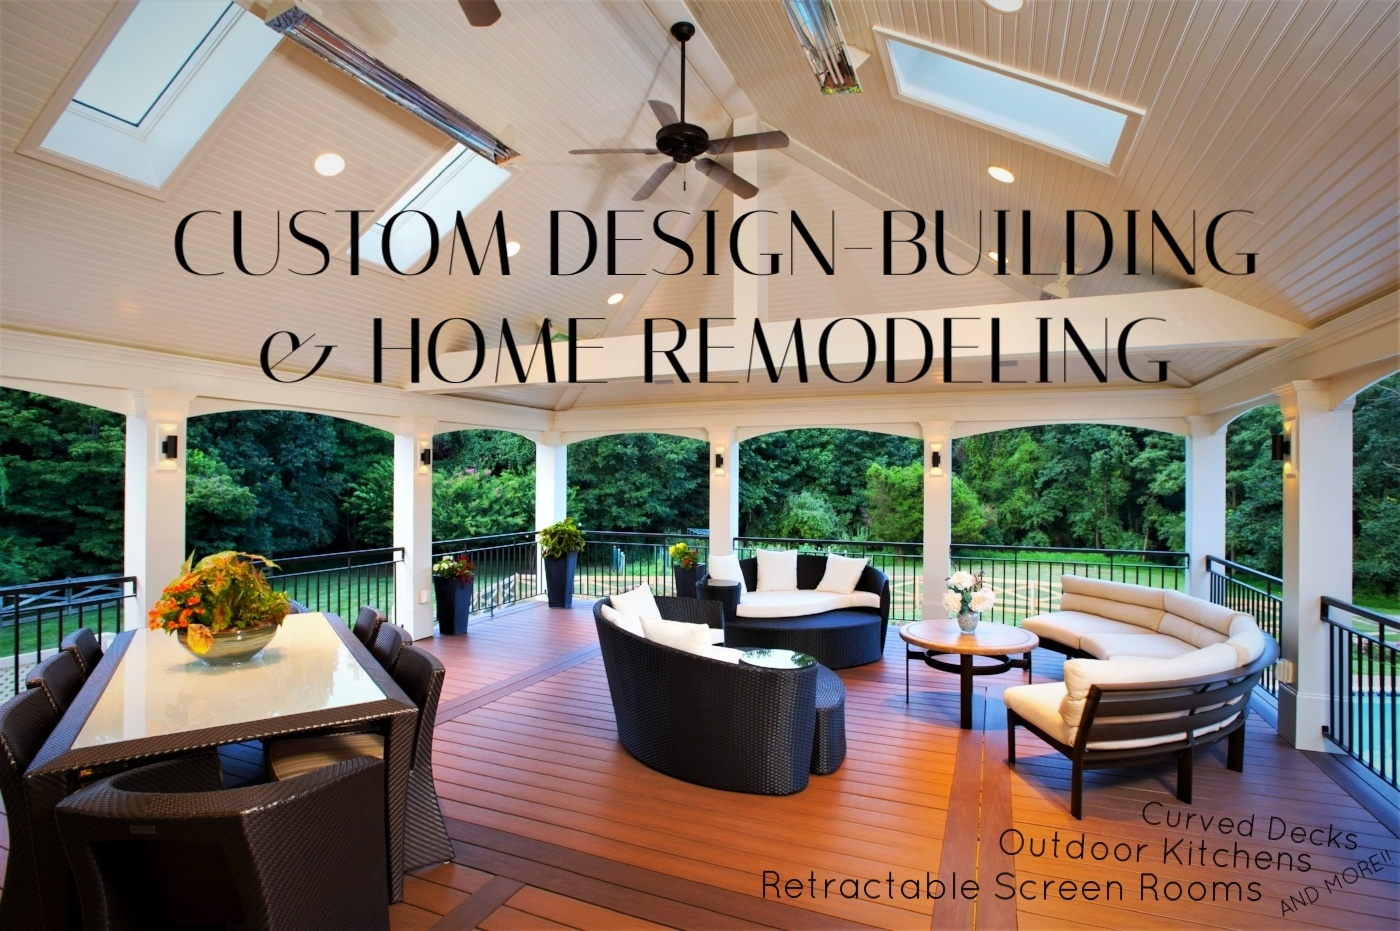 full-service remodeling and decking contractor in md, va, and d.c.